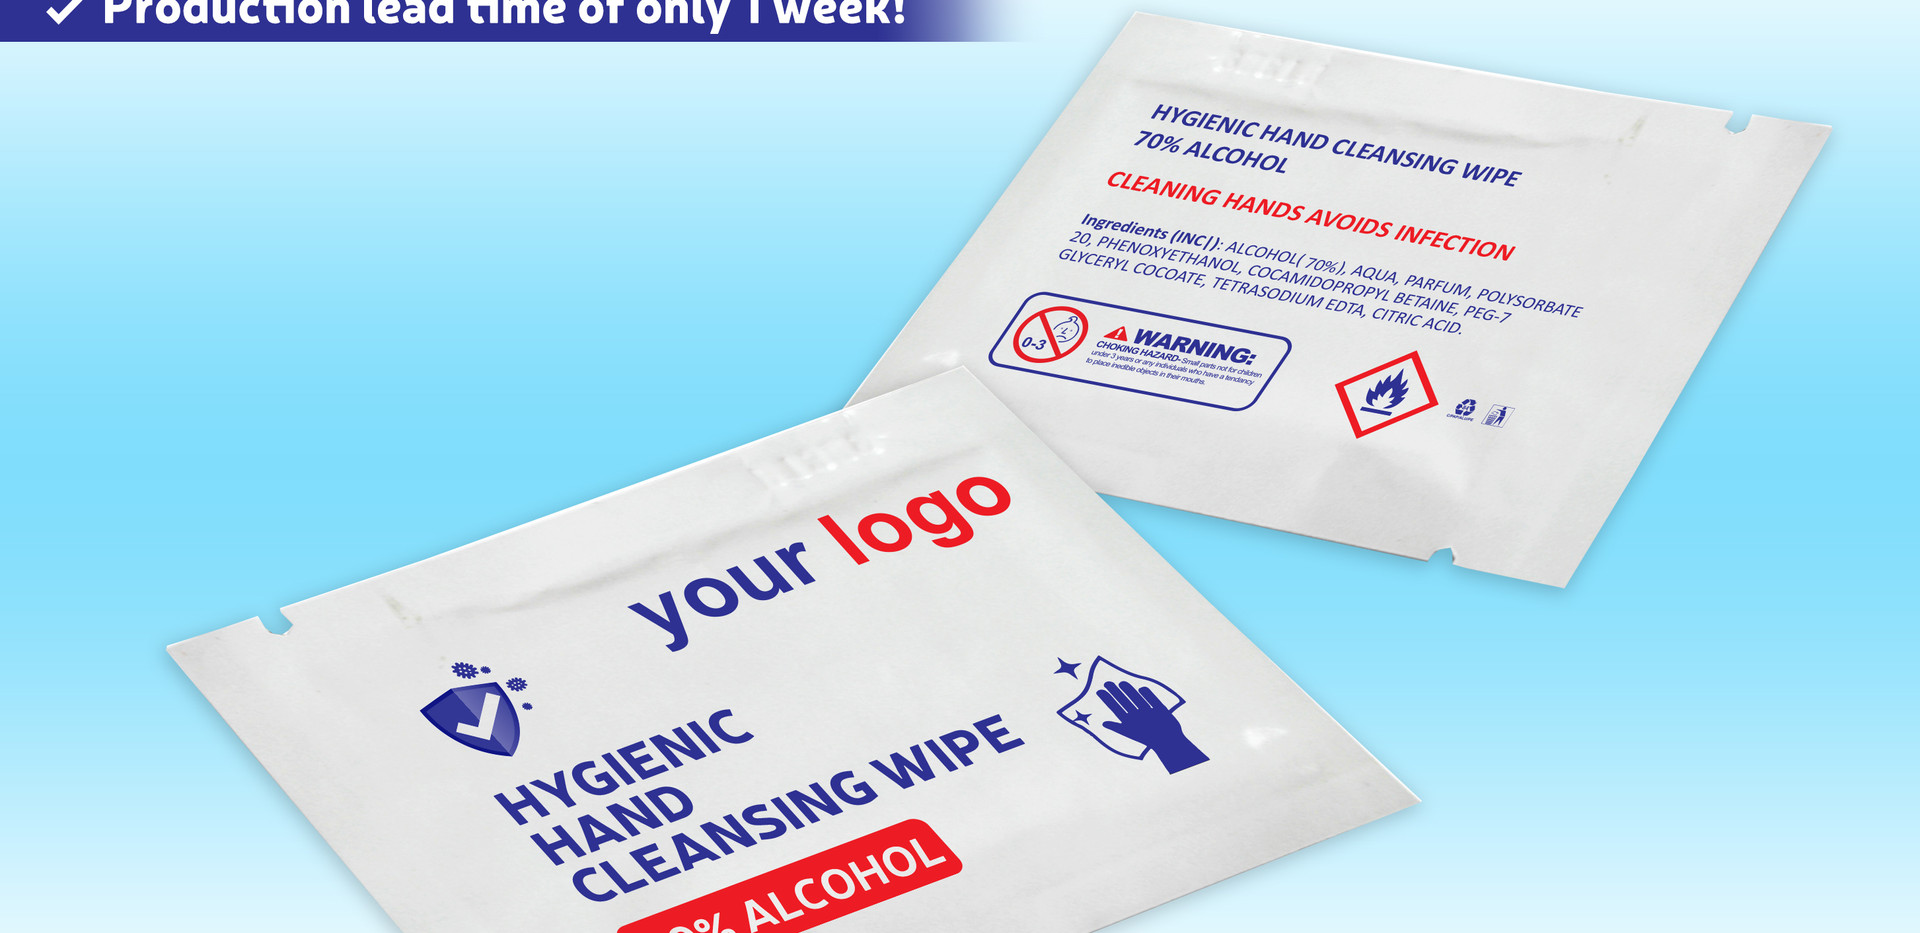 Hygienic Hand Cleansing Wipe 70% alcohol